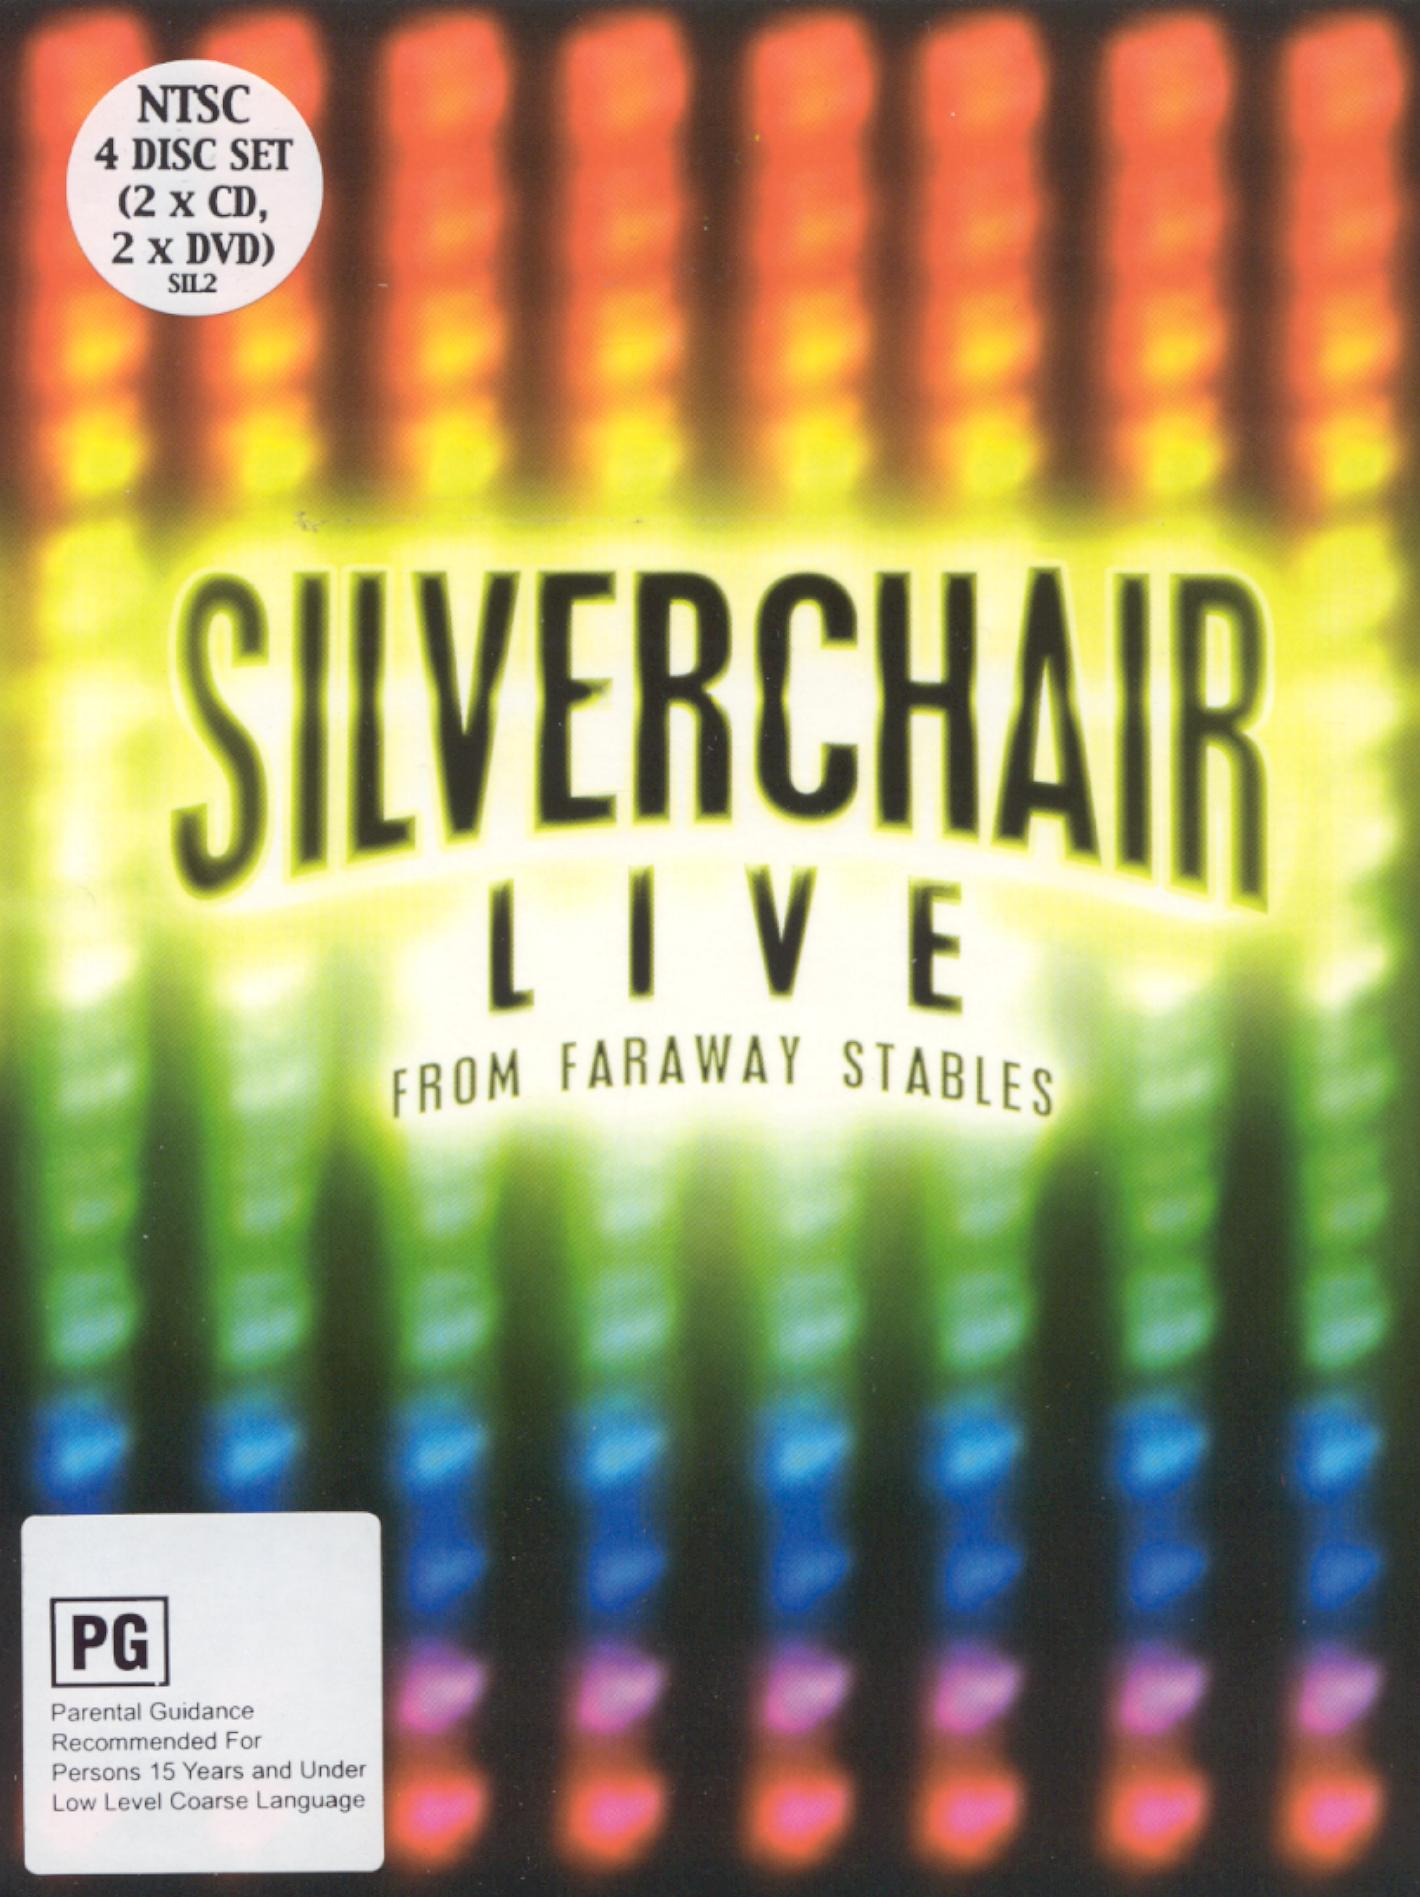 Silverchair: Live From Faraway Stables